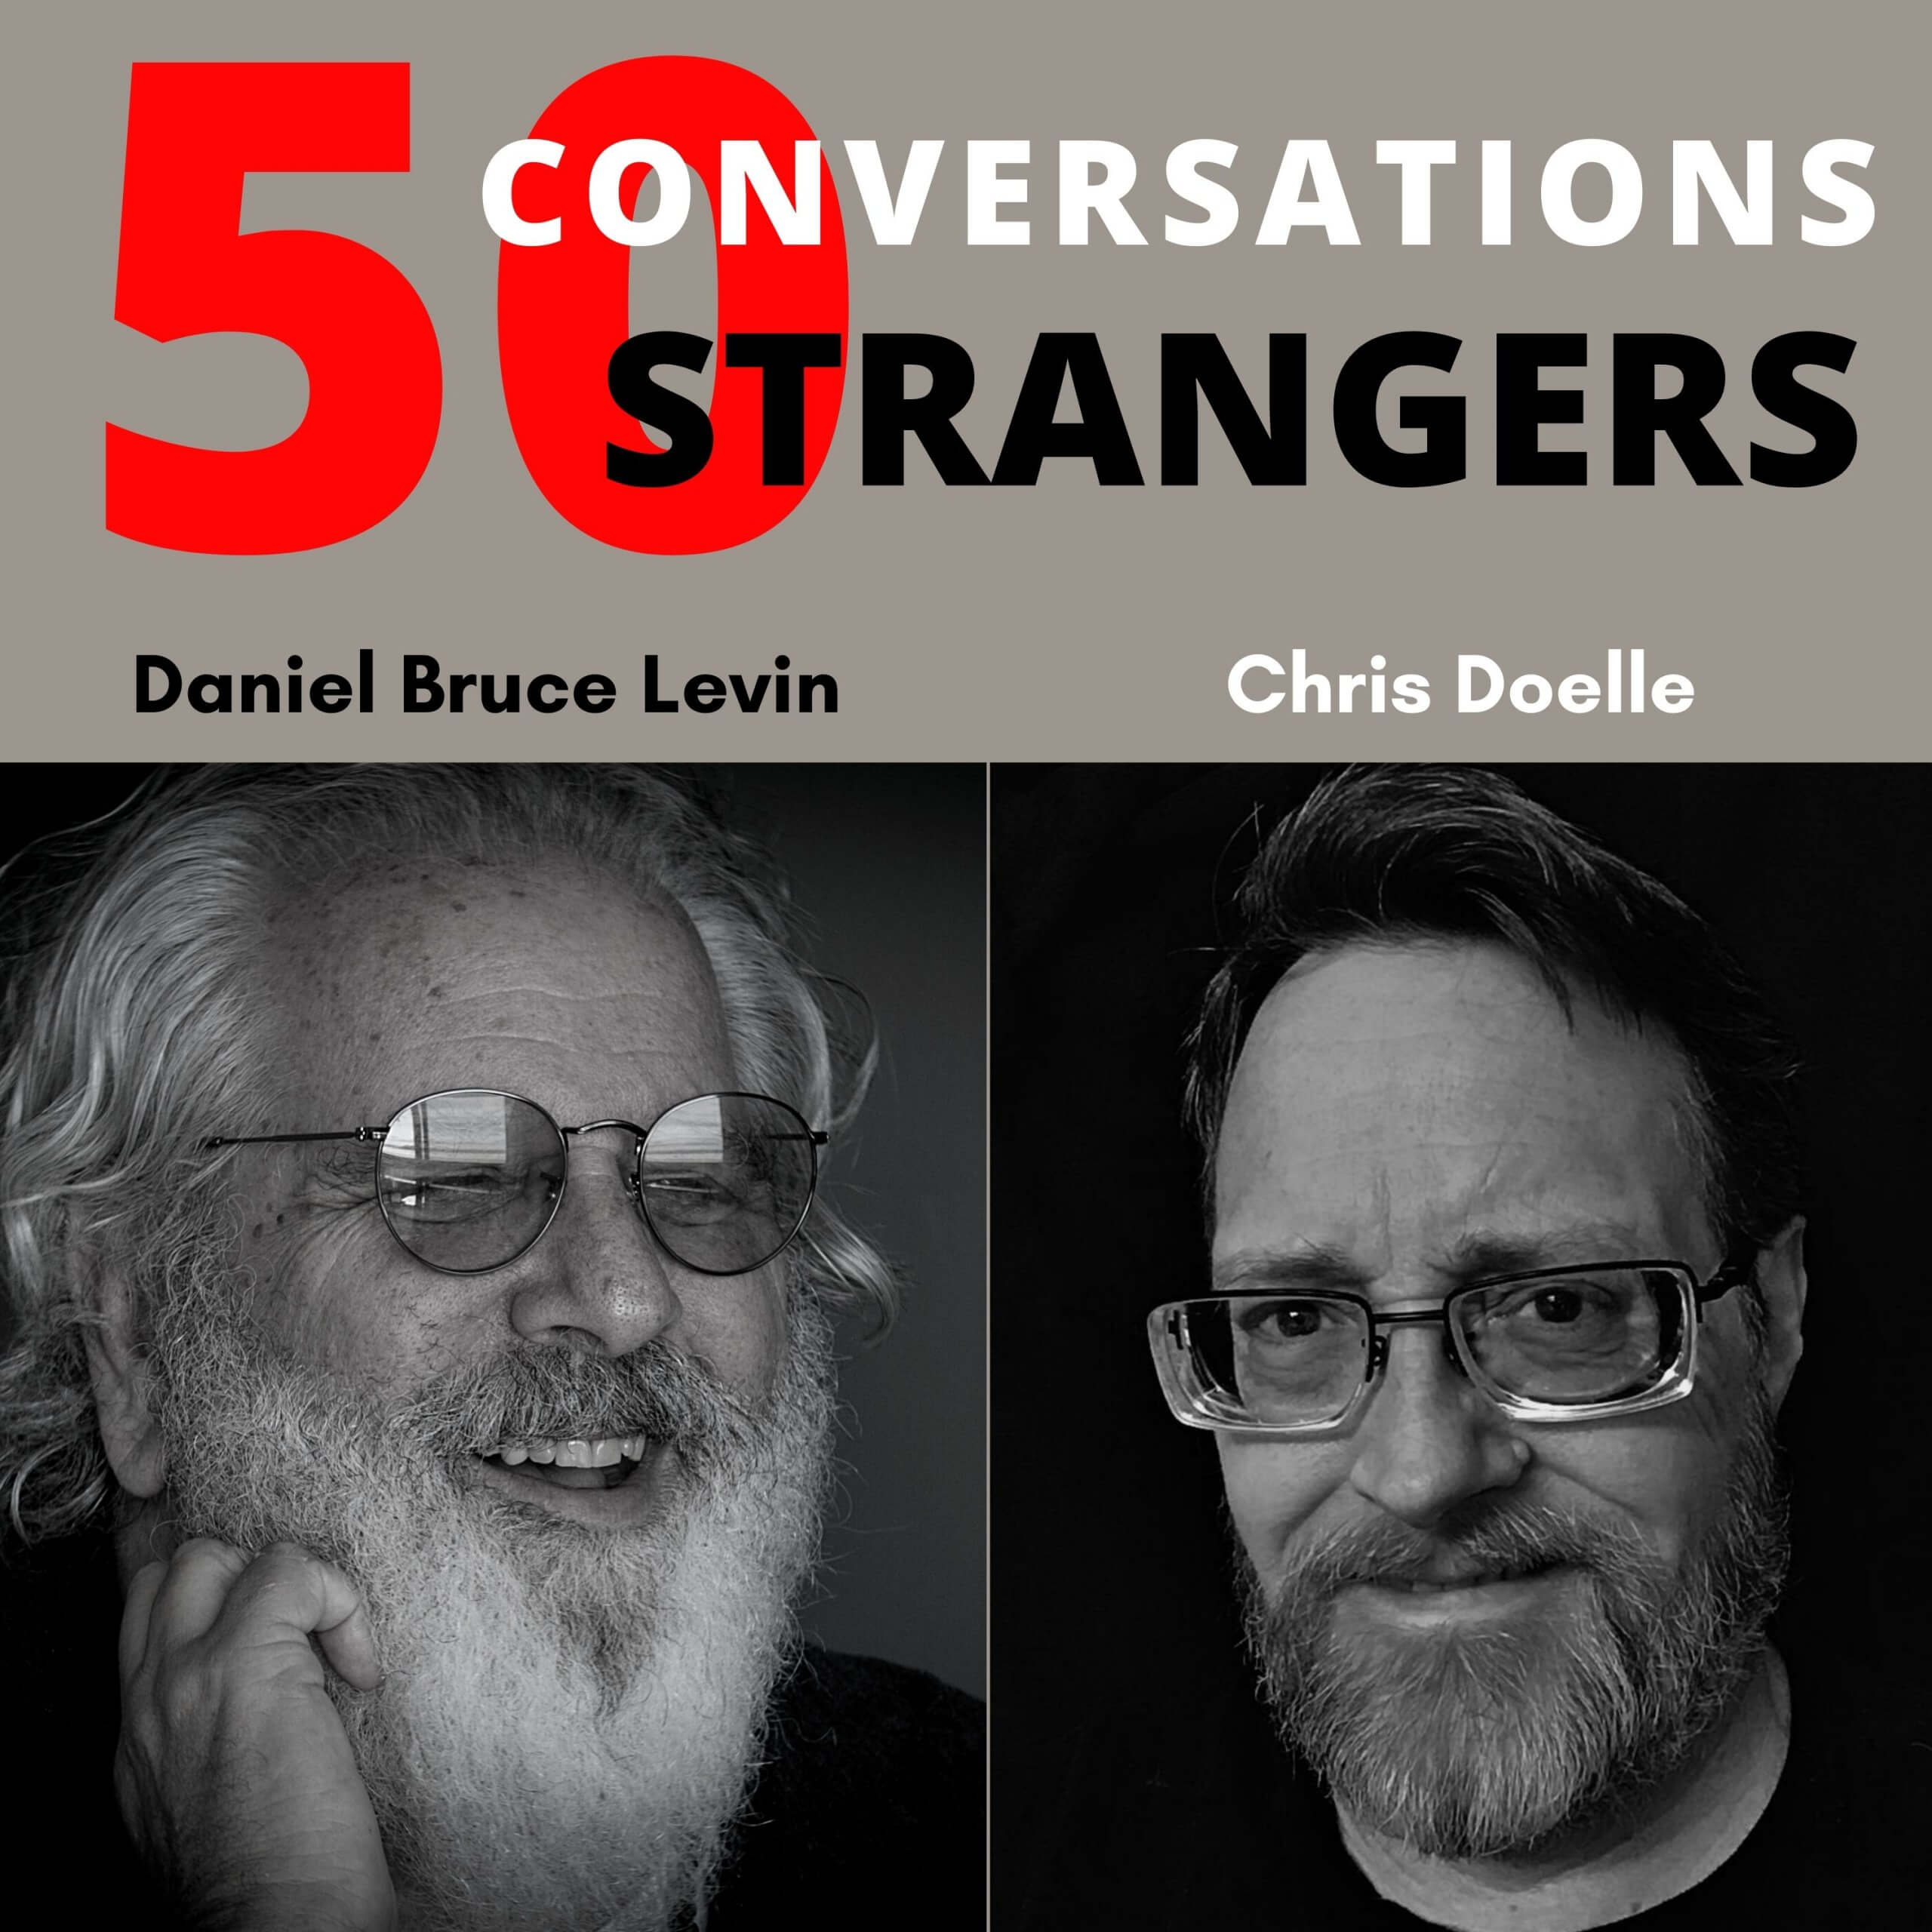 50 Conversations with 50 Strangers with Chris Doelle